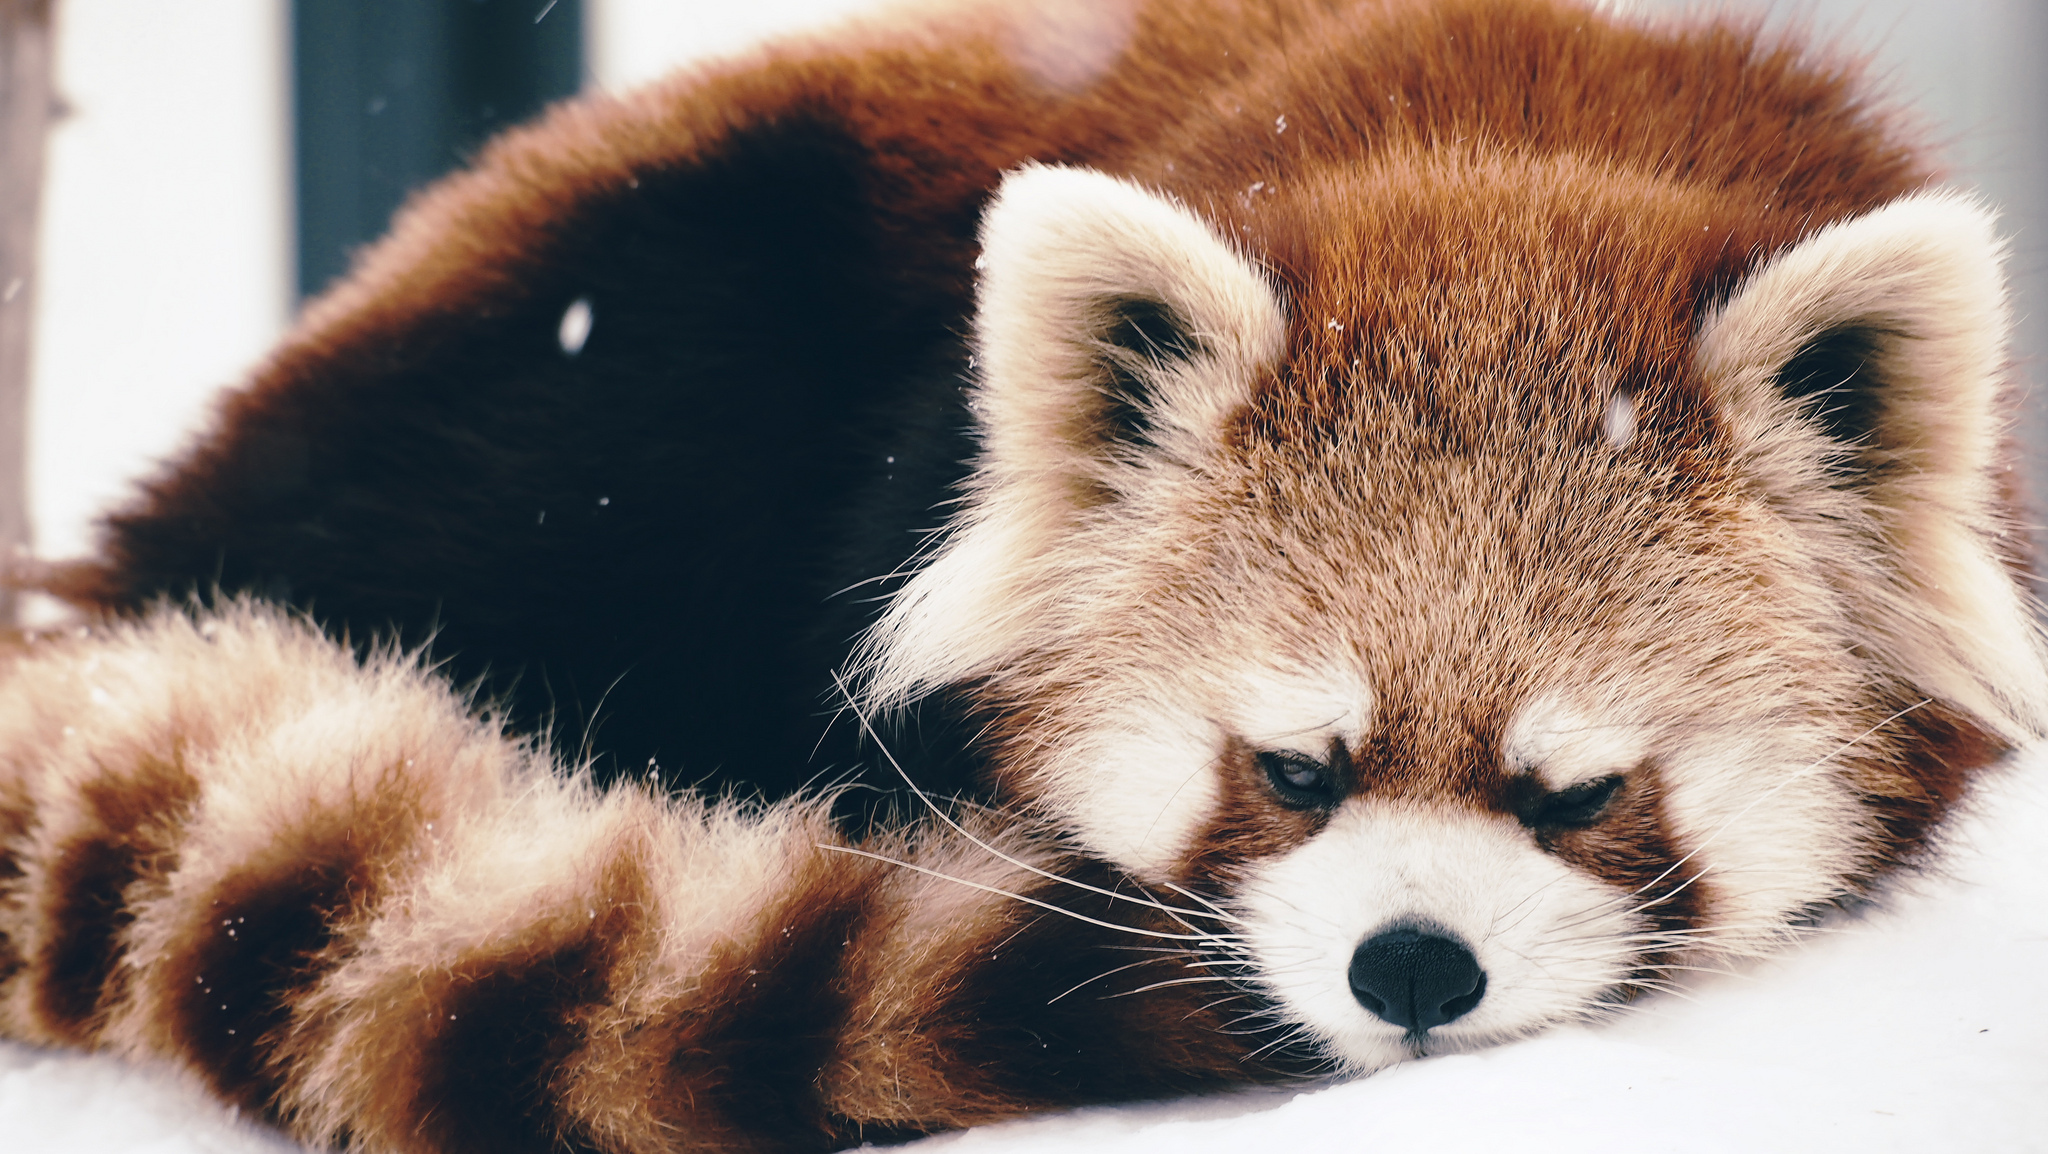 Download mobile wallpaper Animals, Panda, Red Panda, Fluffy, To Lie Down, Lie for free.